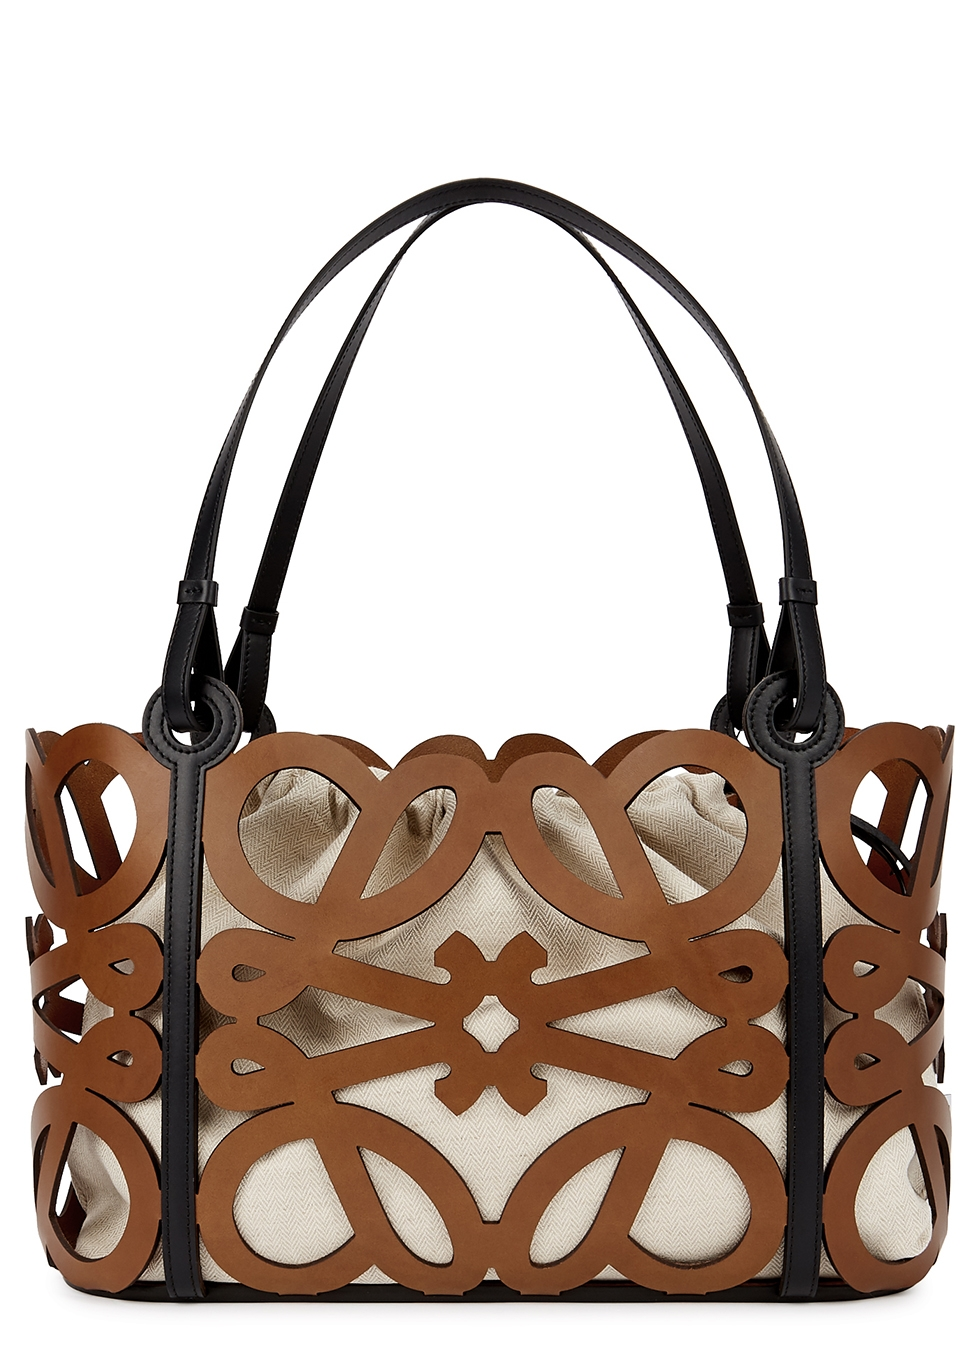 Anagram cut-out leather tote